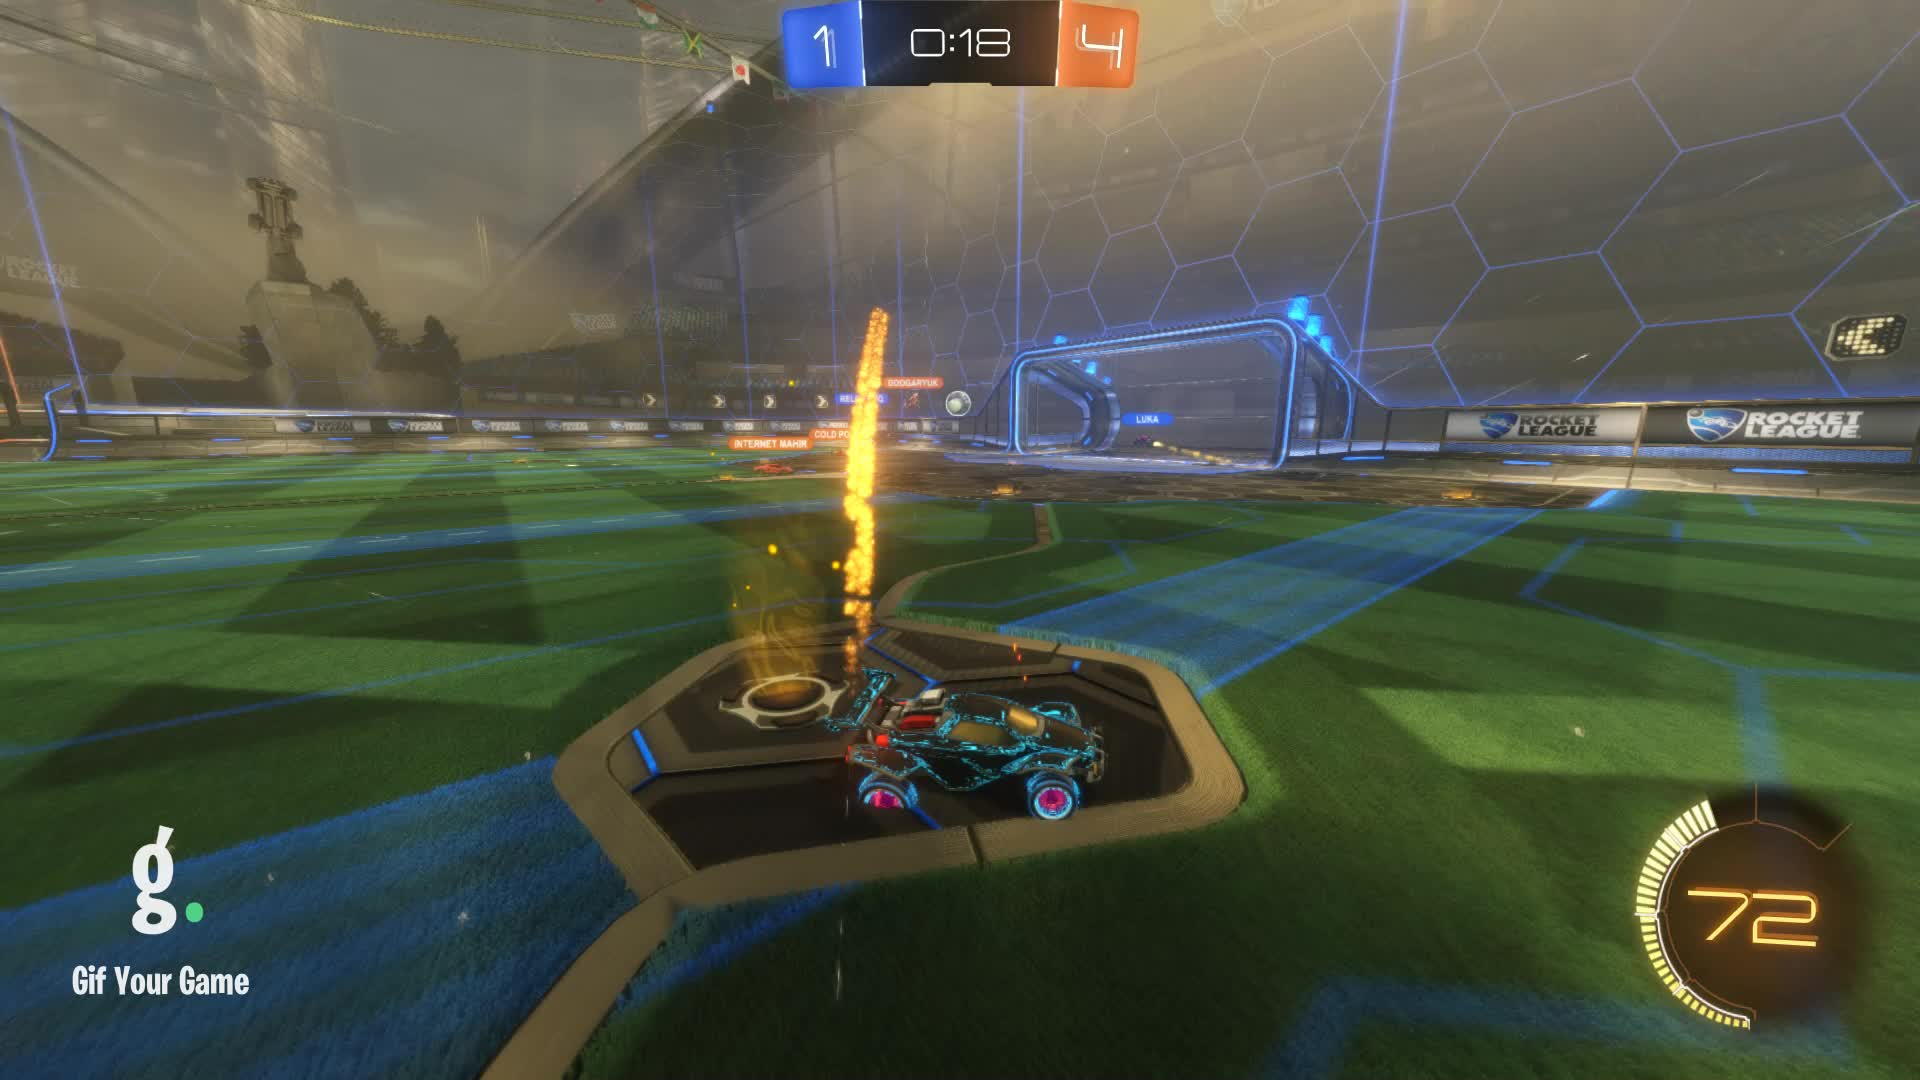 Demo, Gif Your Game, GifYourGame, Rocket League, RocketLeague, Timper [NL], Demo 2: Timper [NL] GIFs